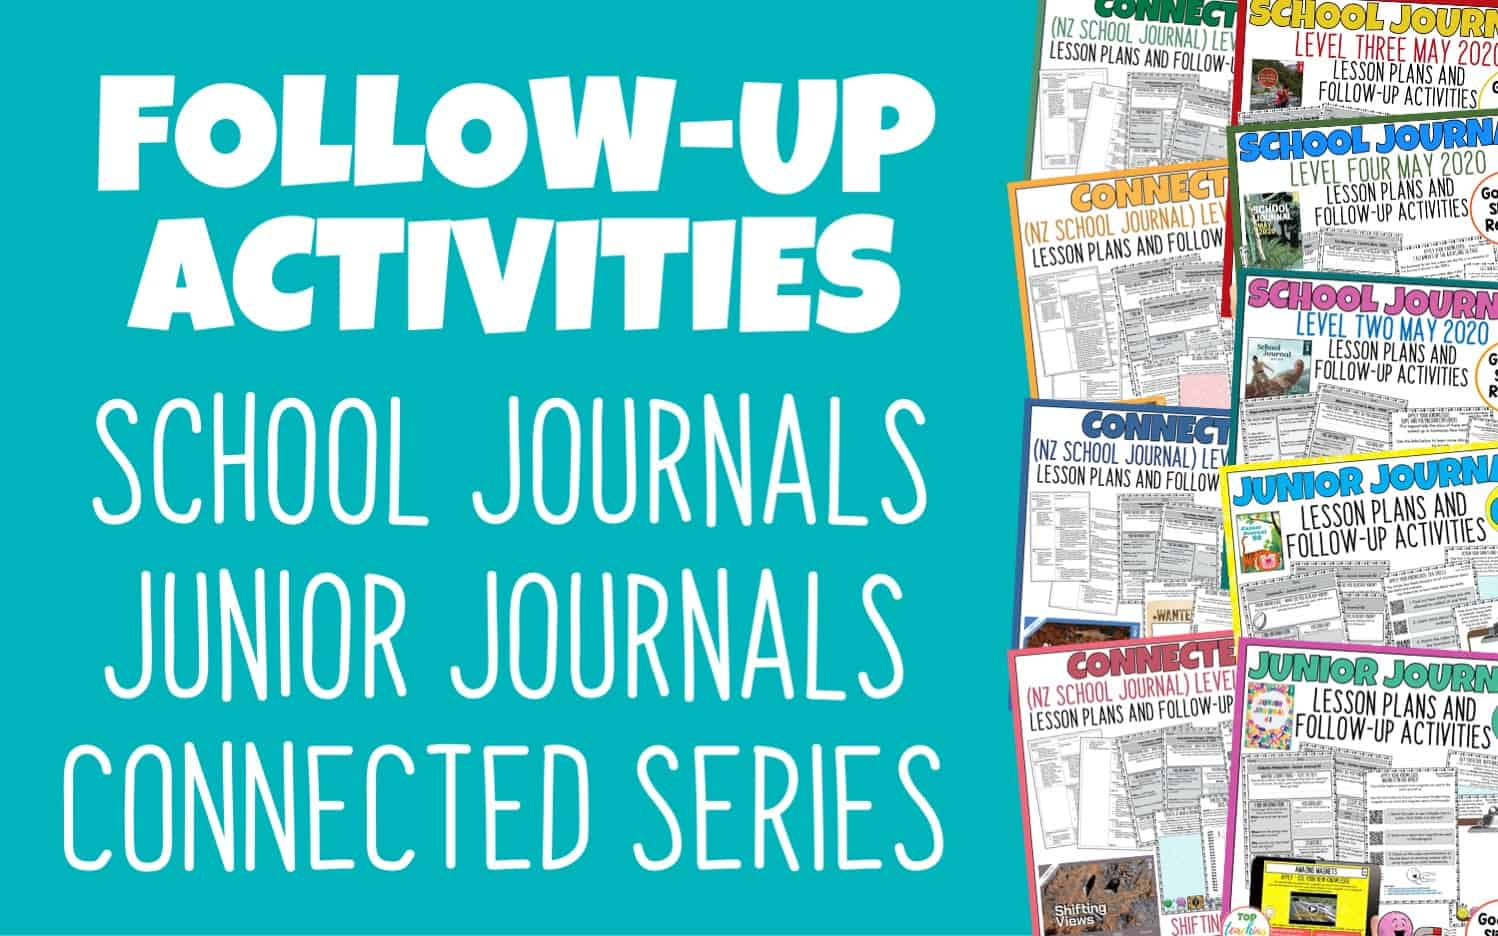 School Journal Follow Up Activities. Our NZ School Journal Activities cover all current Level 2, Level 3, and Level 4 School Journals and are provided in both print and digital form. Each follow-up activity pack provides a lesson plan and three activities pages featuring higher-order thinking skills. New packs will be added as New Zealand School Journals are published.